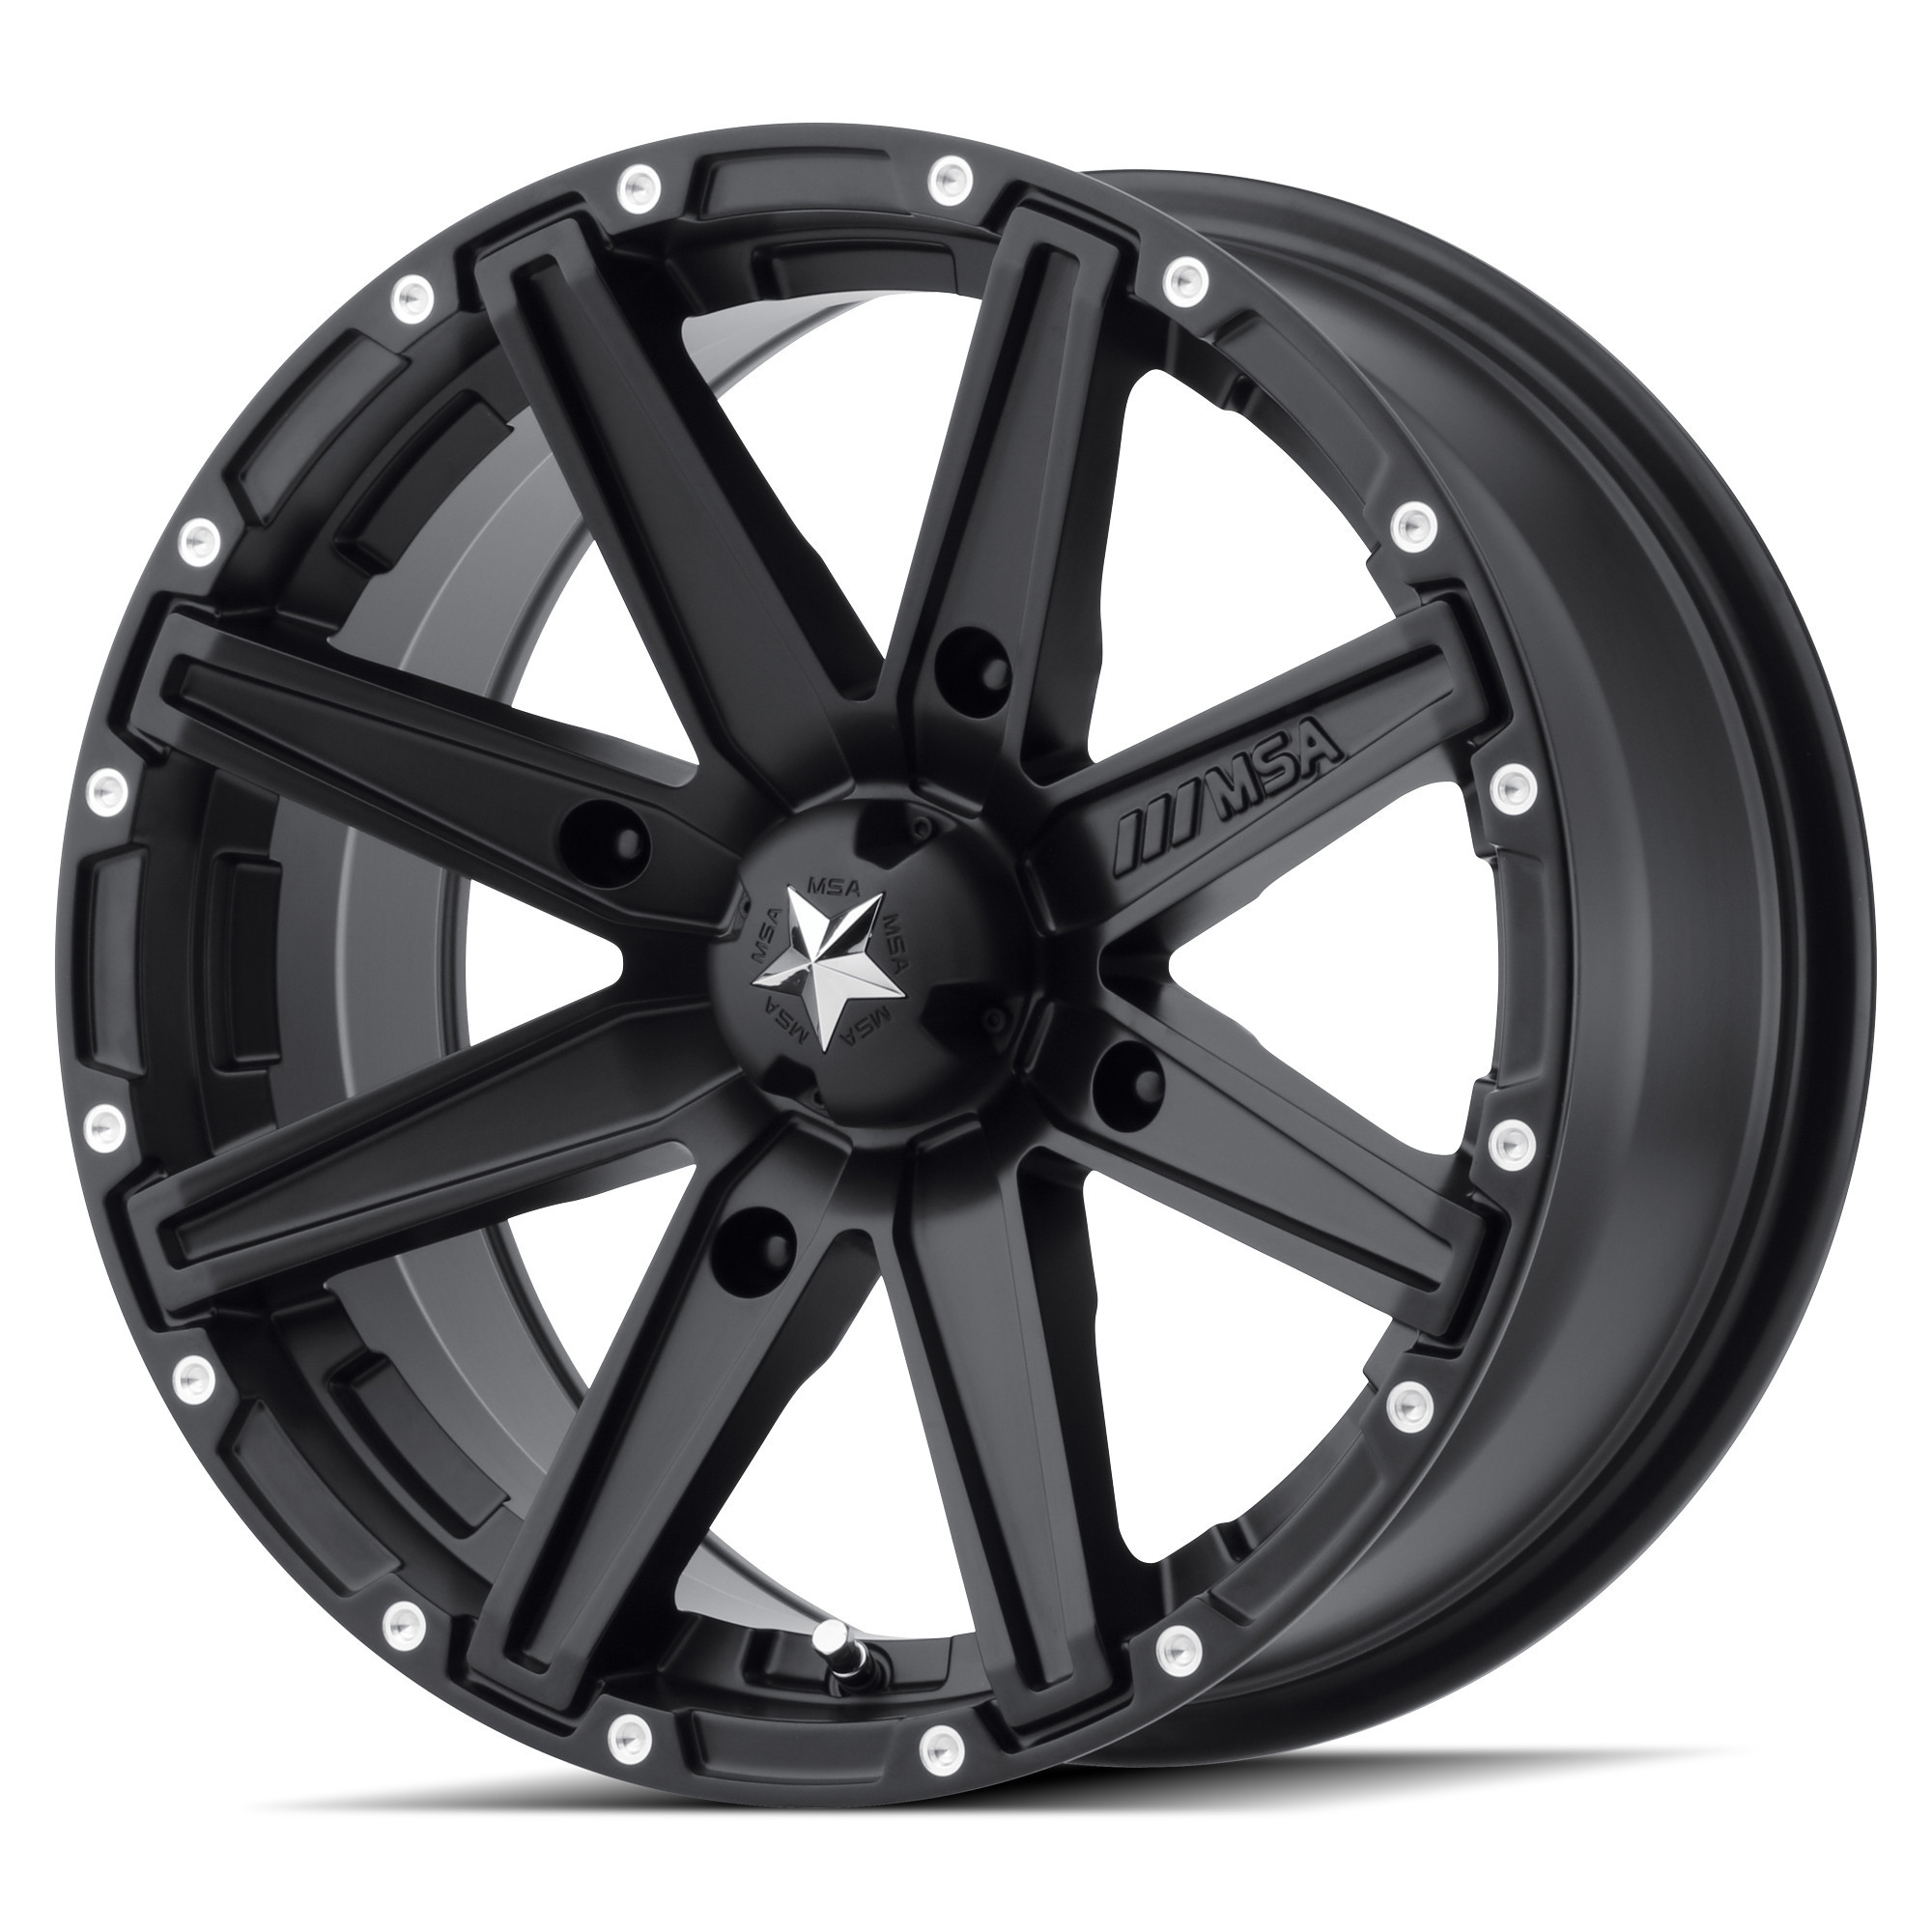 MSA 12x7 4x156 M33 Clutch Satin Black vannesarja Polaris